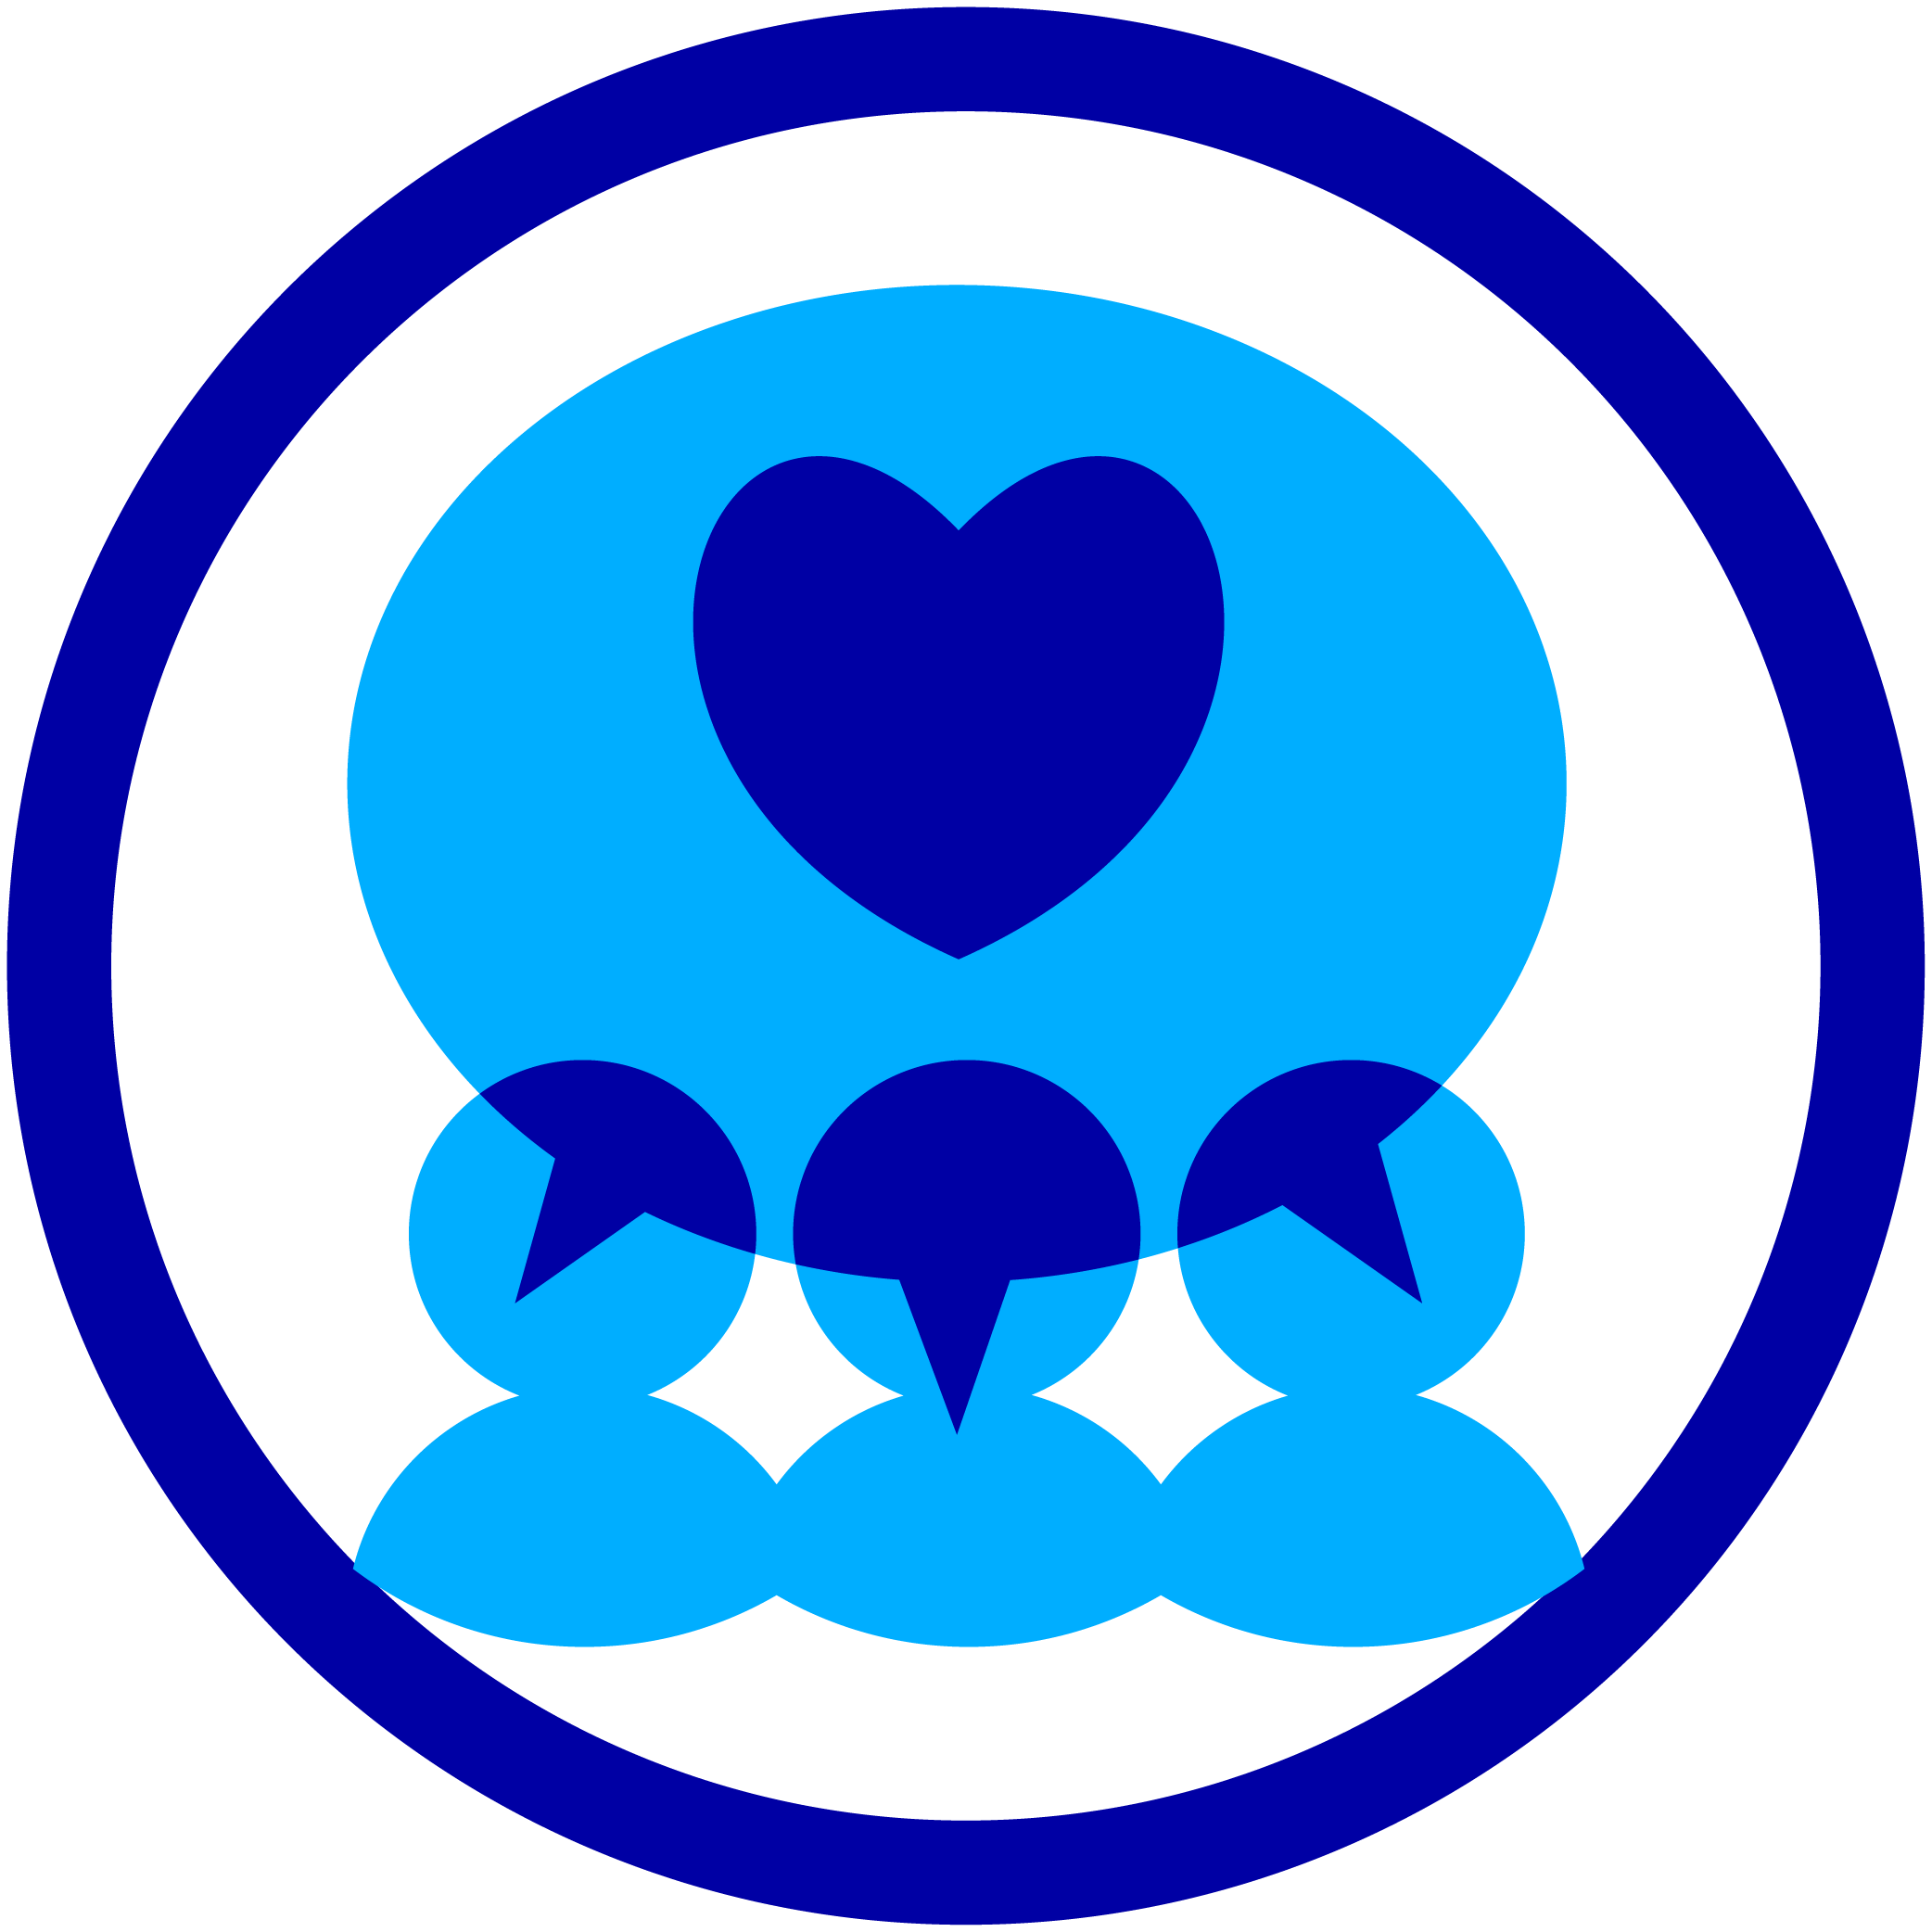 https://de.fi-group.com/wp-content/uploads/sites/19/2021/02/blue-icons-set_1-54.png